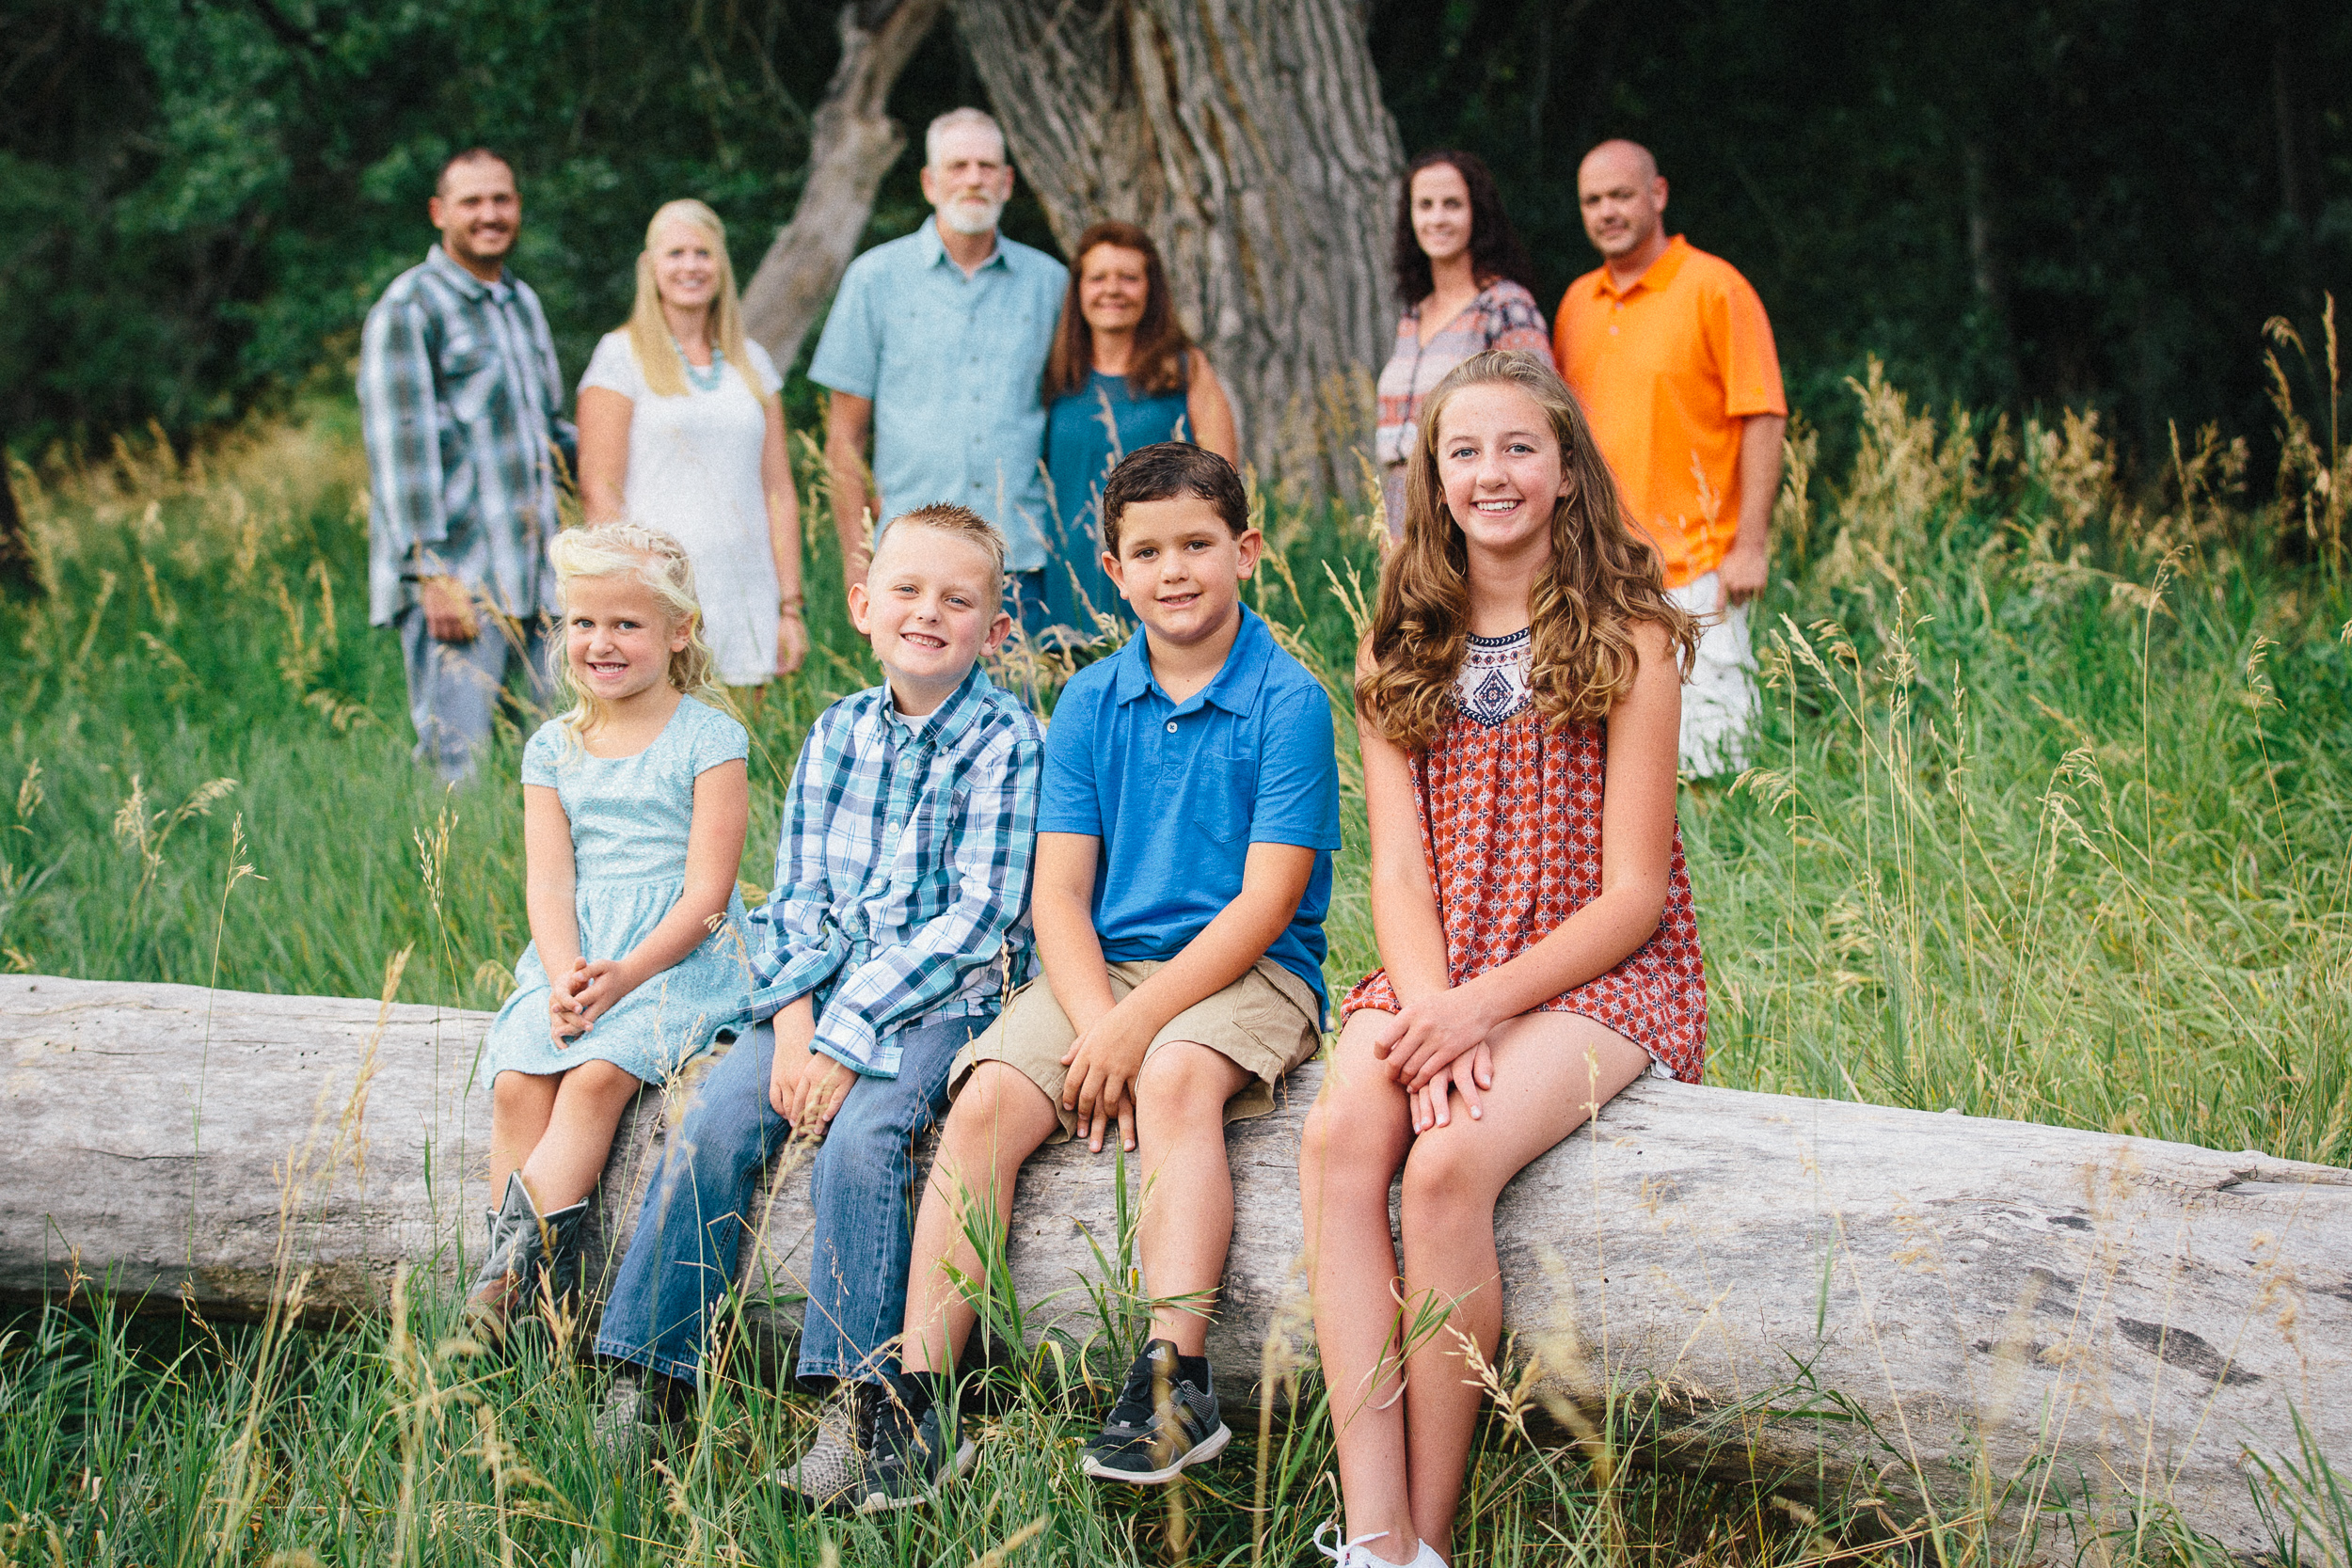 063 - Stricker Family August 2016 - Stylized - Photo by Skigen.Digital - L37A0803.jpg